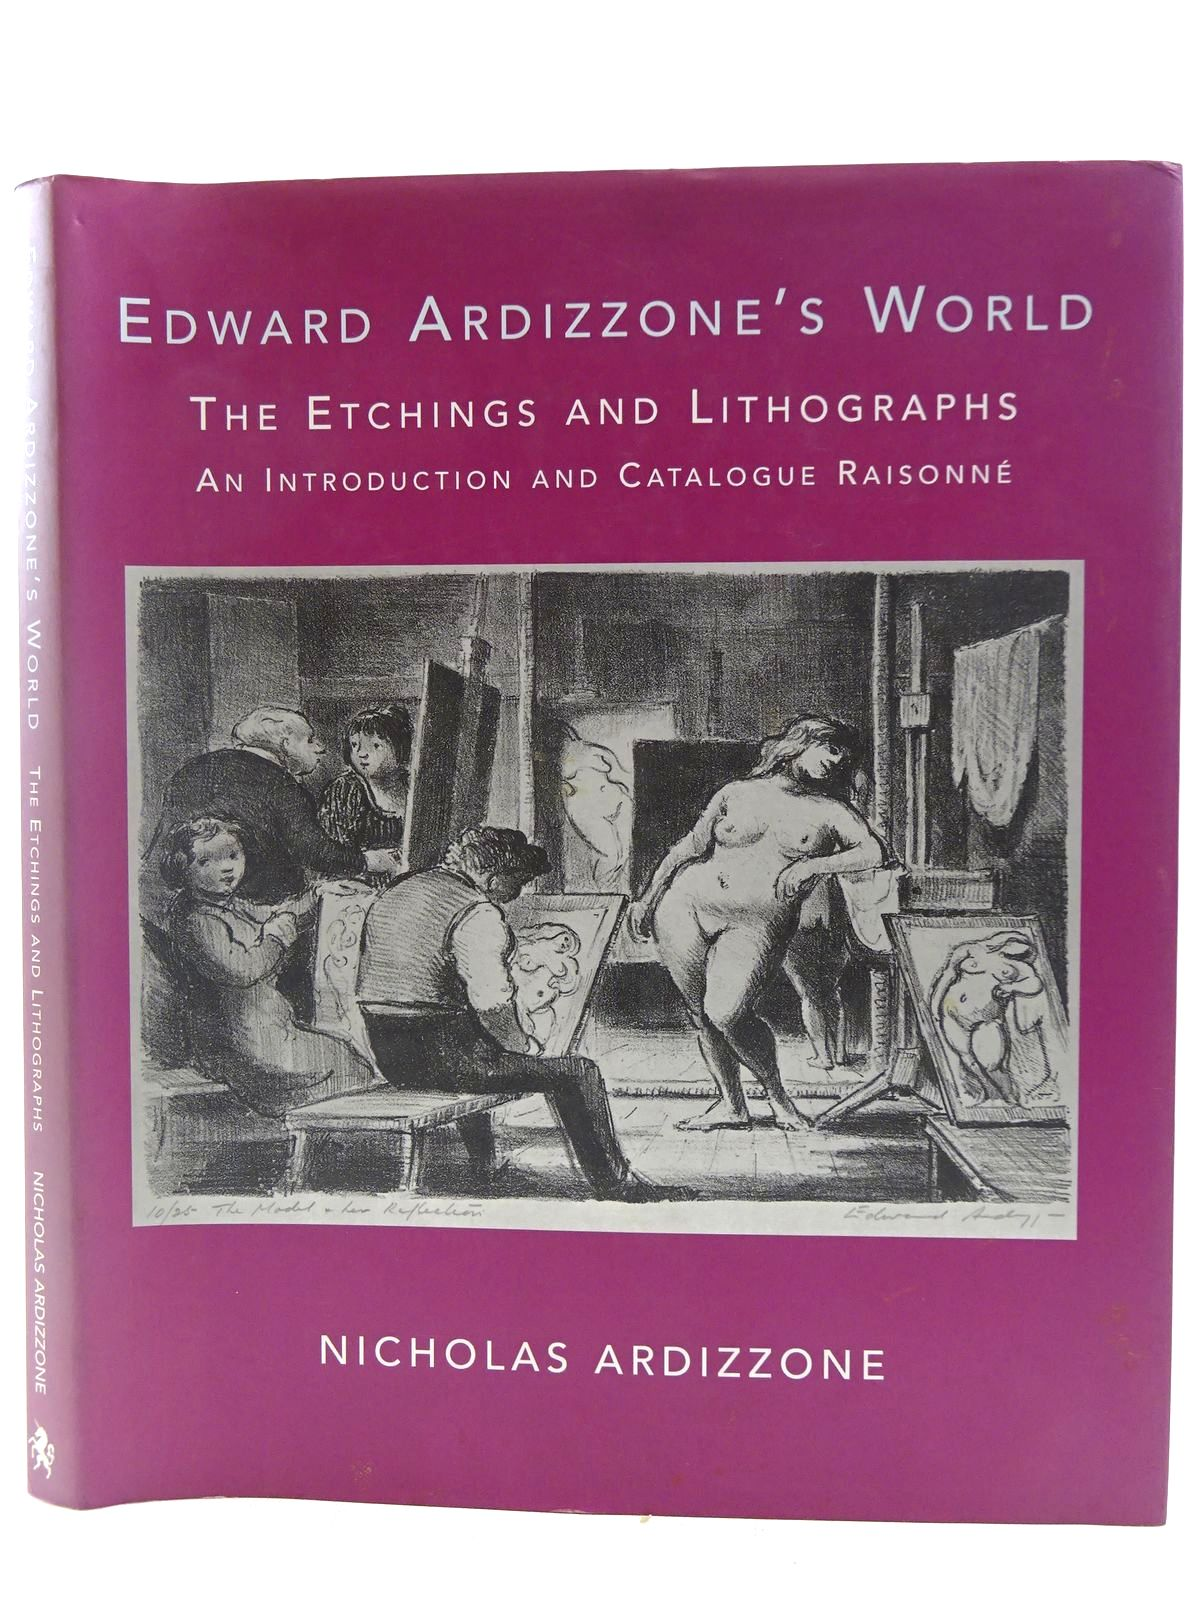 Photo of EDWARD ARDIZZONE'S WORLD THE ETCHINGS AND LITHOGRAPHS written by Ardizzone, Nicholas illustrated by Ardizzone, Edward published by The Unicorn Press, Wolseley Fine Arts (STOCK CODE: 2128462)  for sale by Stella & Rose's Books